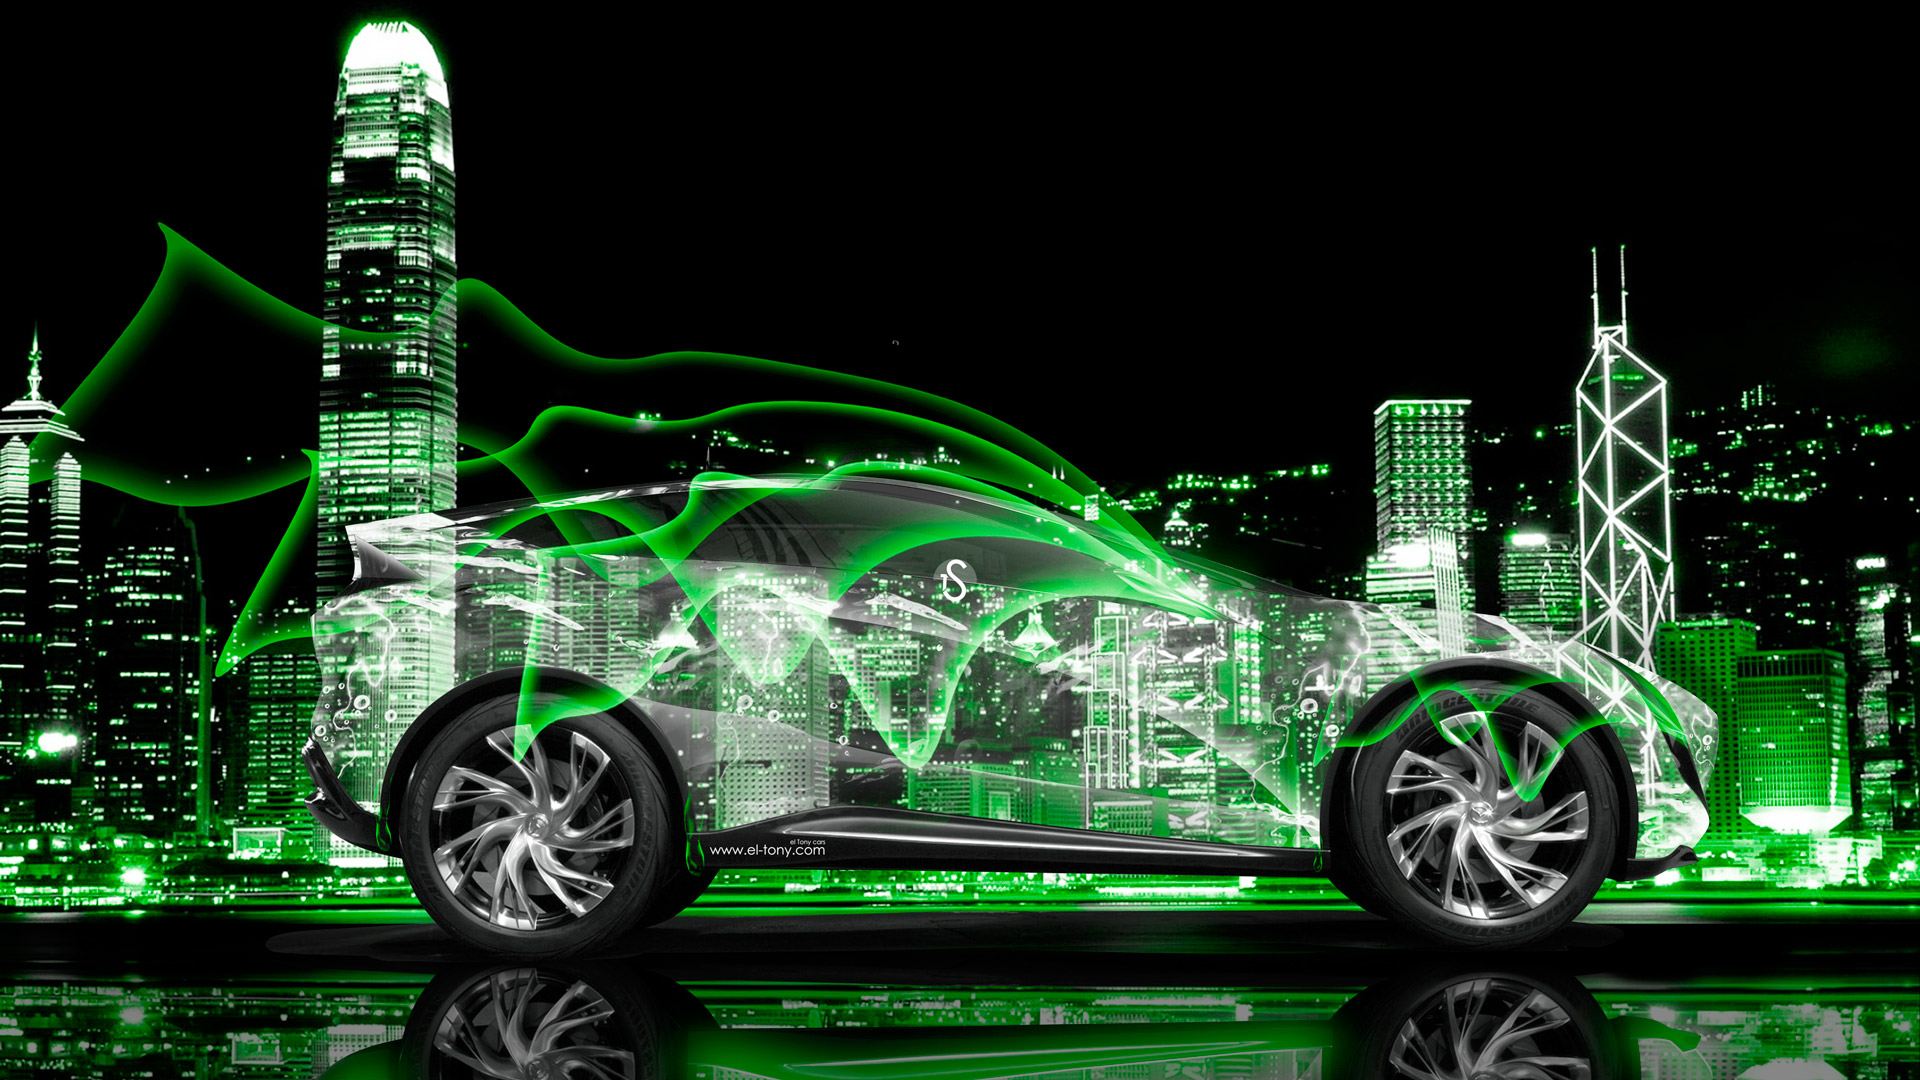 Mazda Kazamai Crystal City Abstract Car 2014 Green  Amazing Ideas